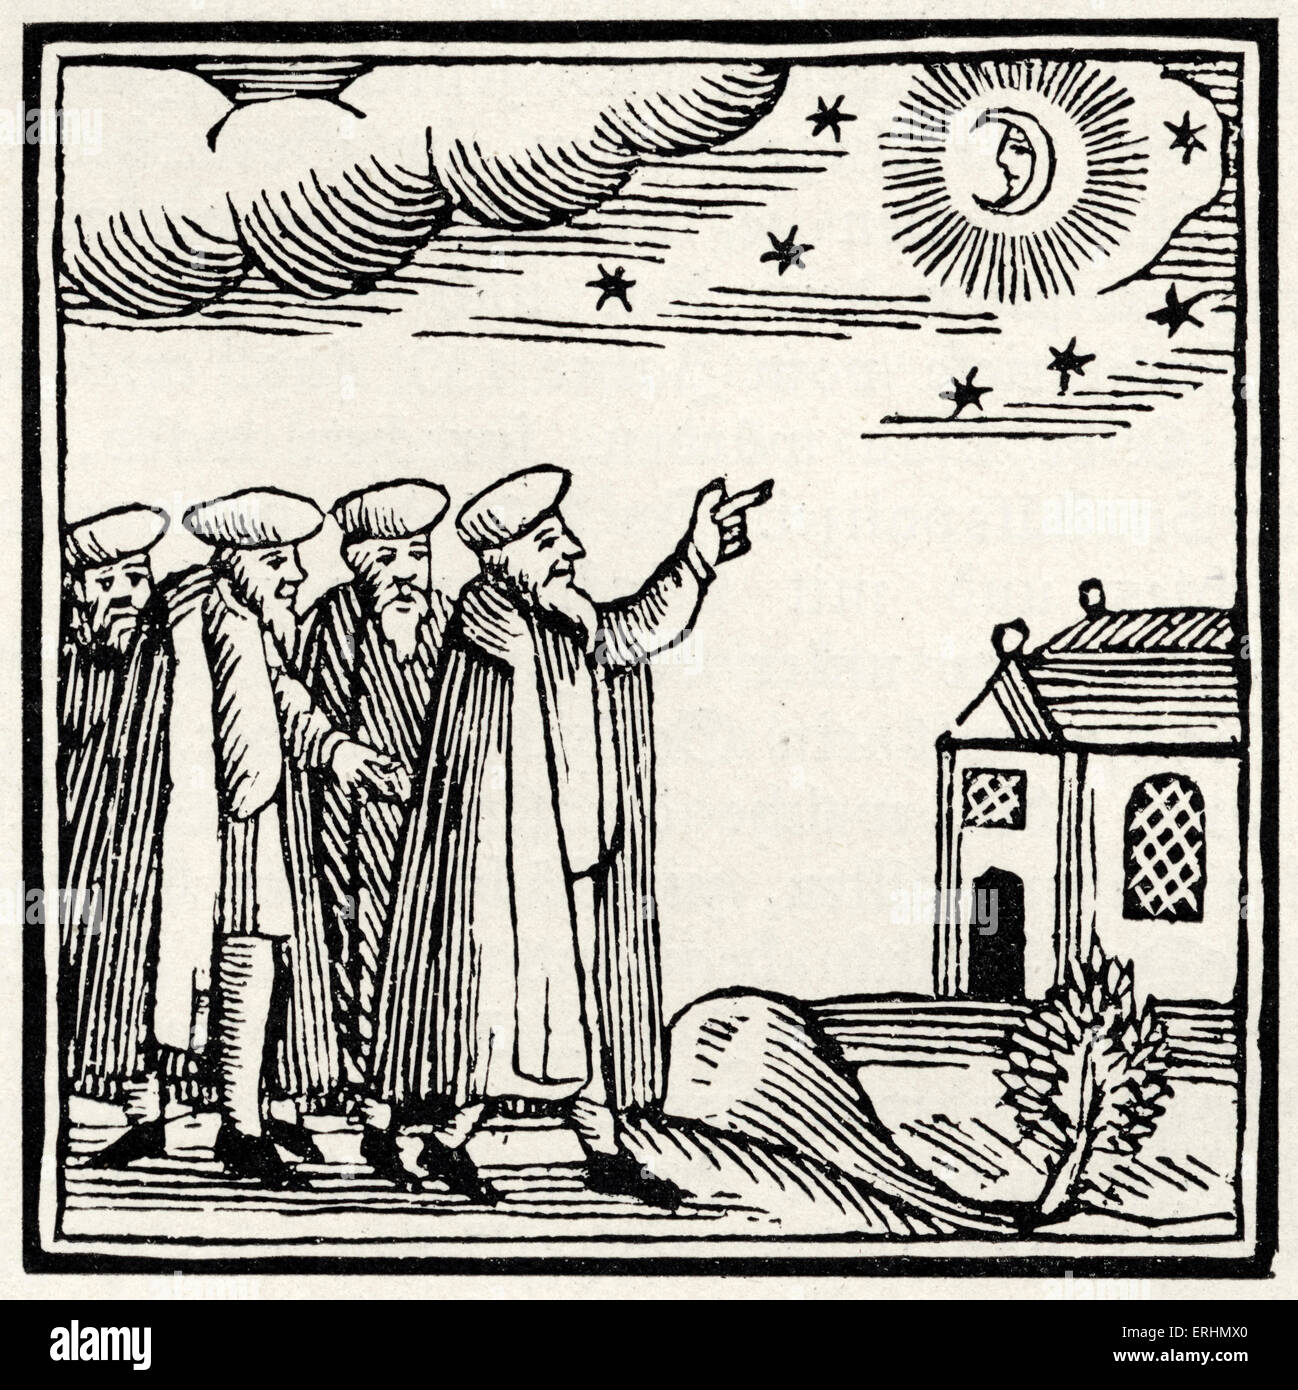 Blessing on the new moon Drawing from 1695 Amsterdam Passover Hagadah - Stock Image